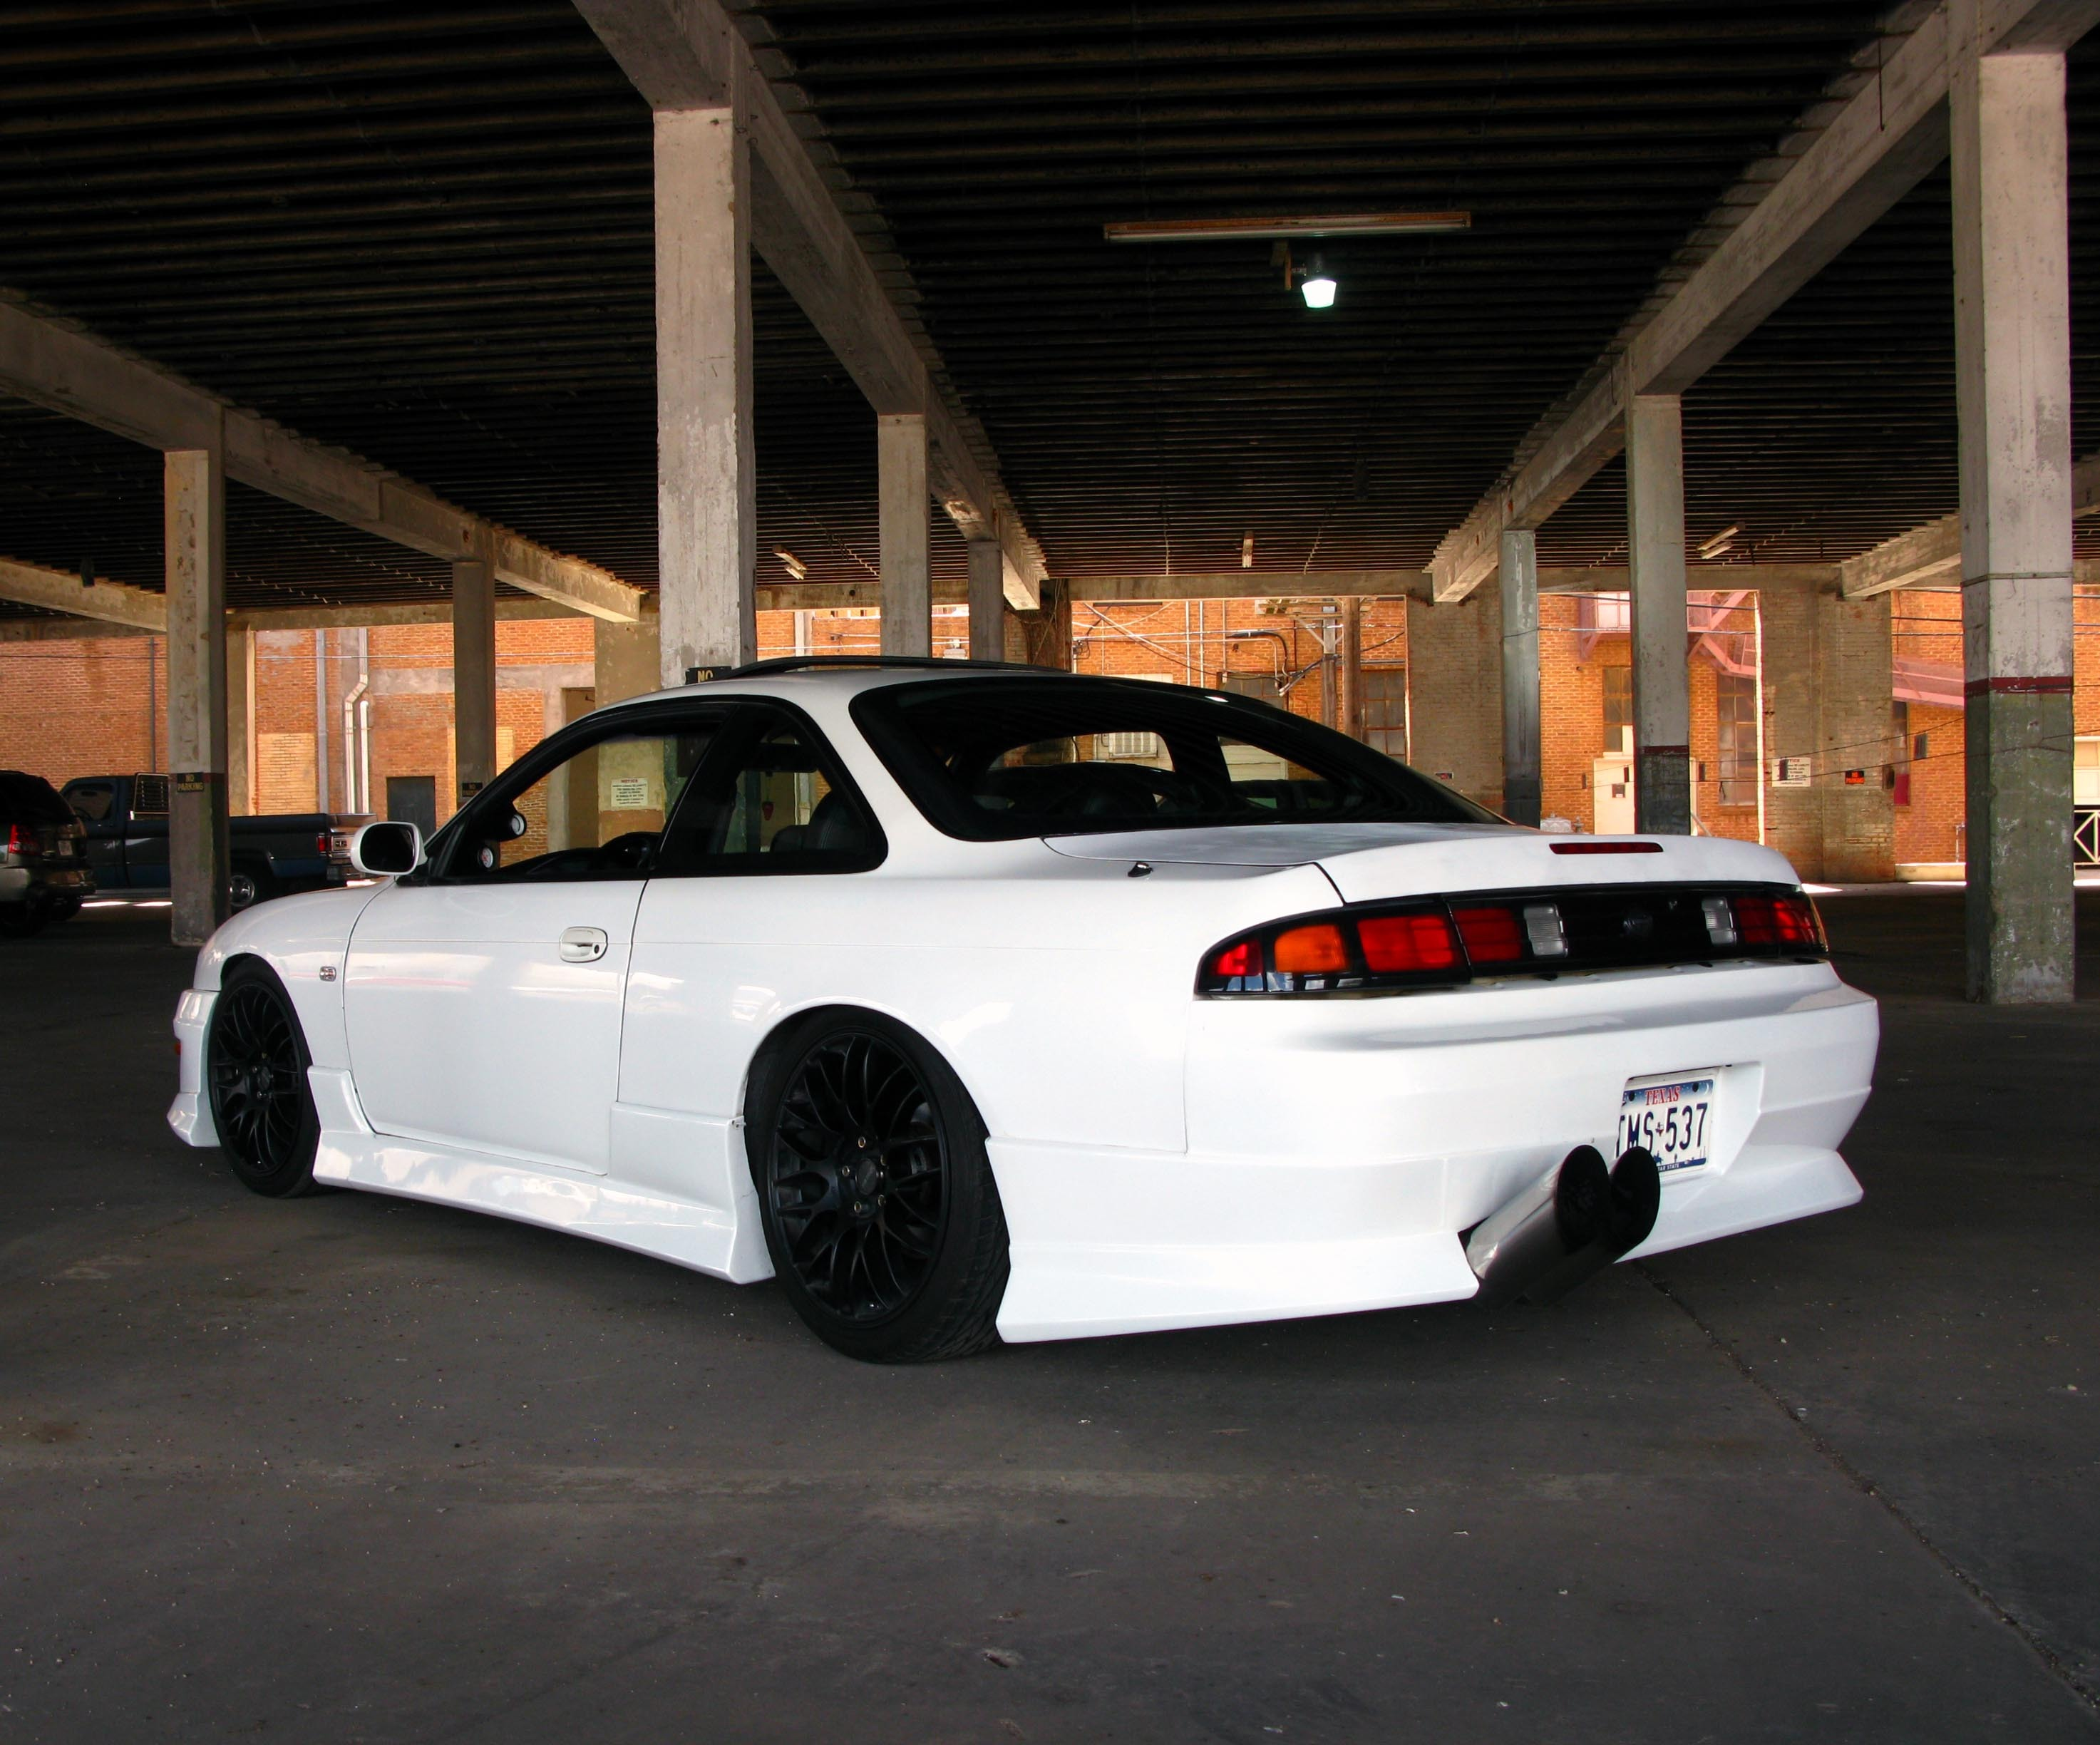 boosted_kouki's 1998 Nissan 240SX